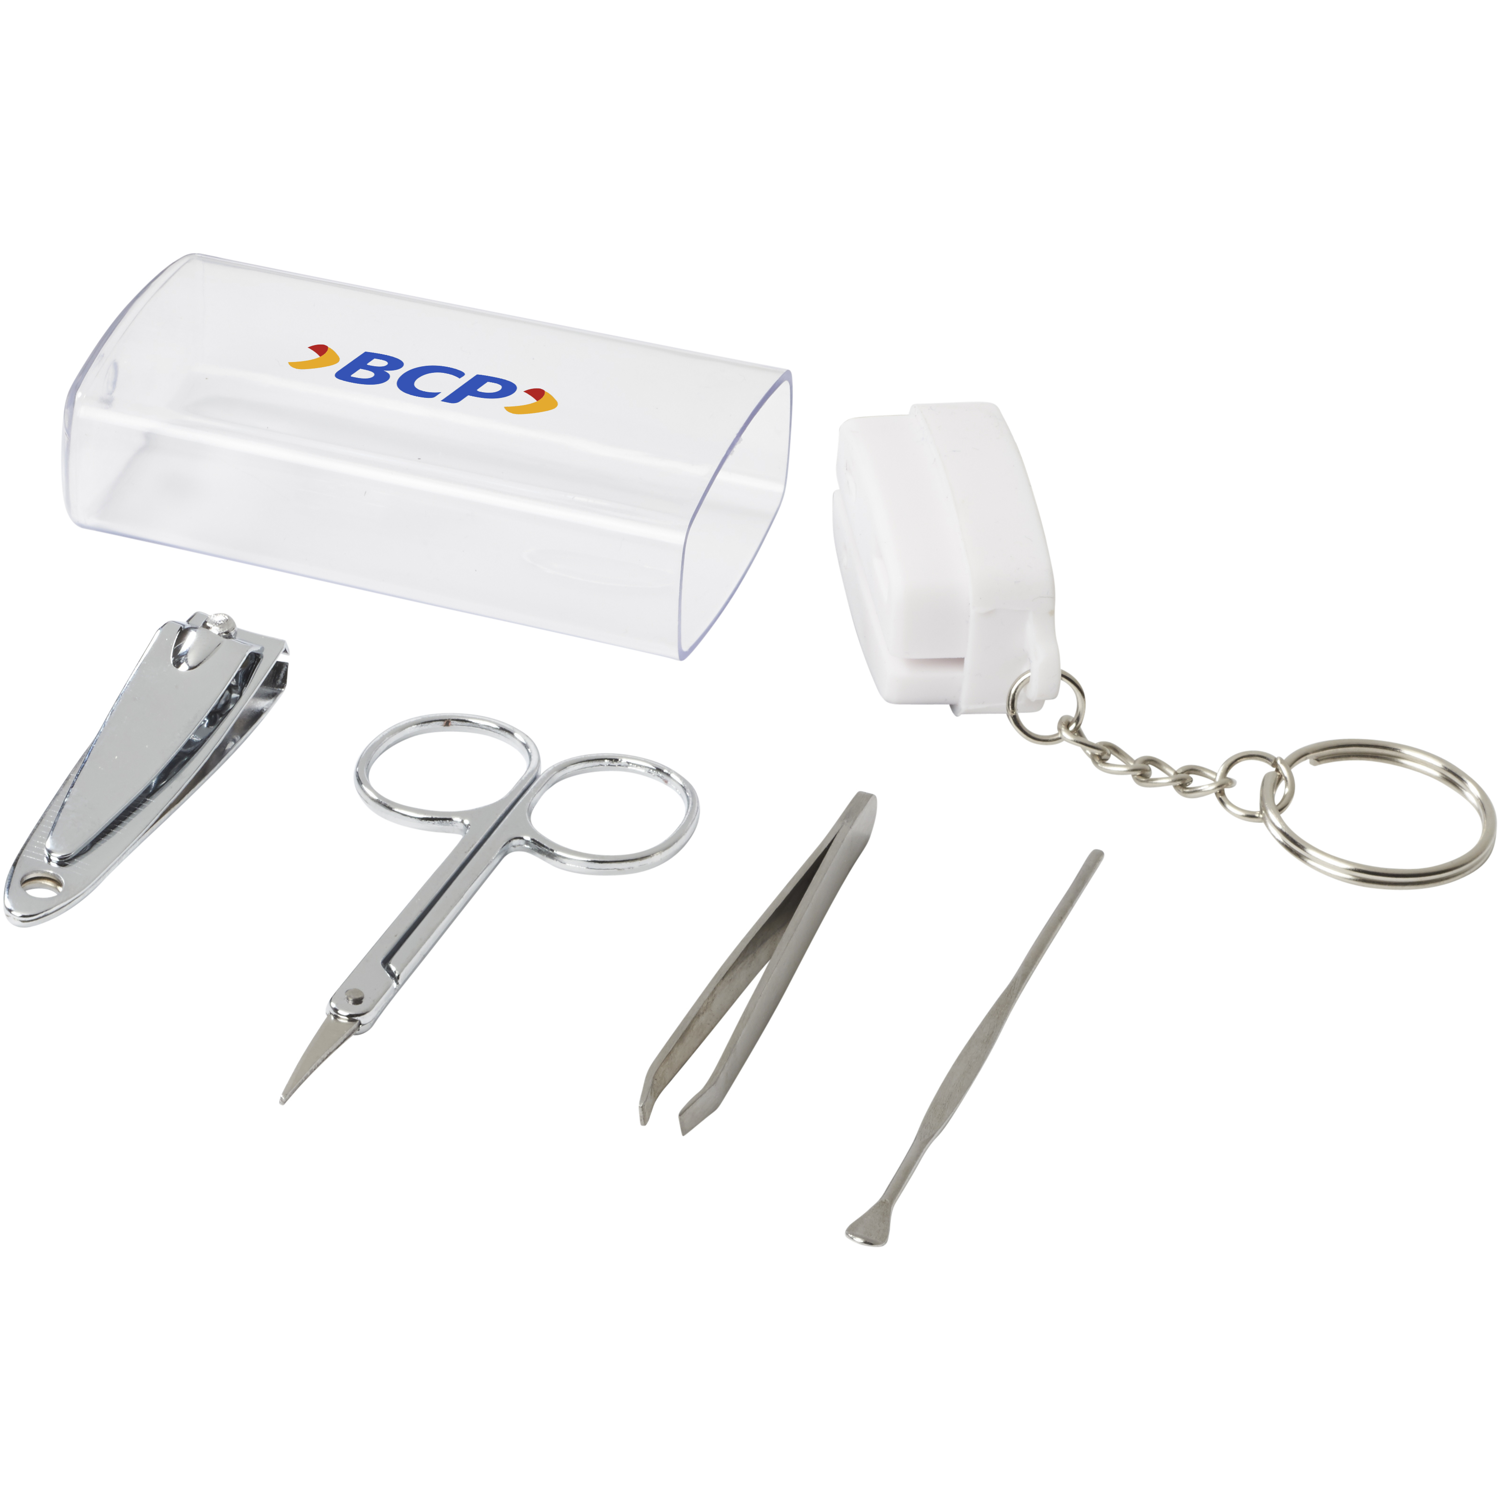 Seki Portable Manicure Set